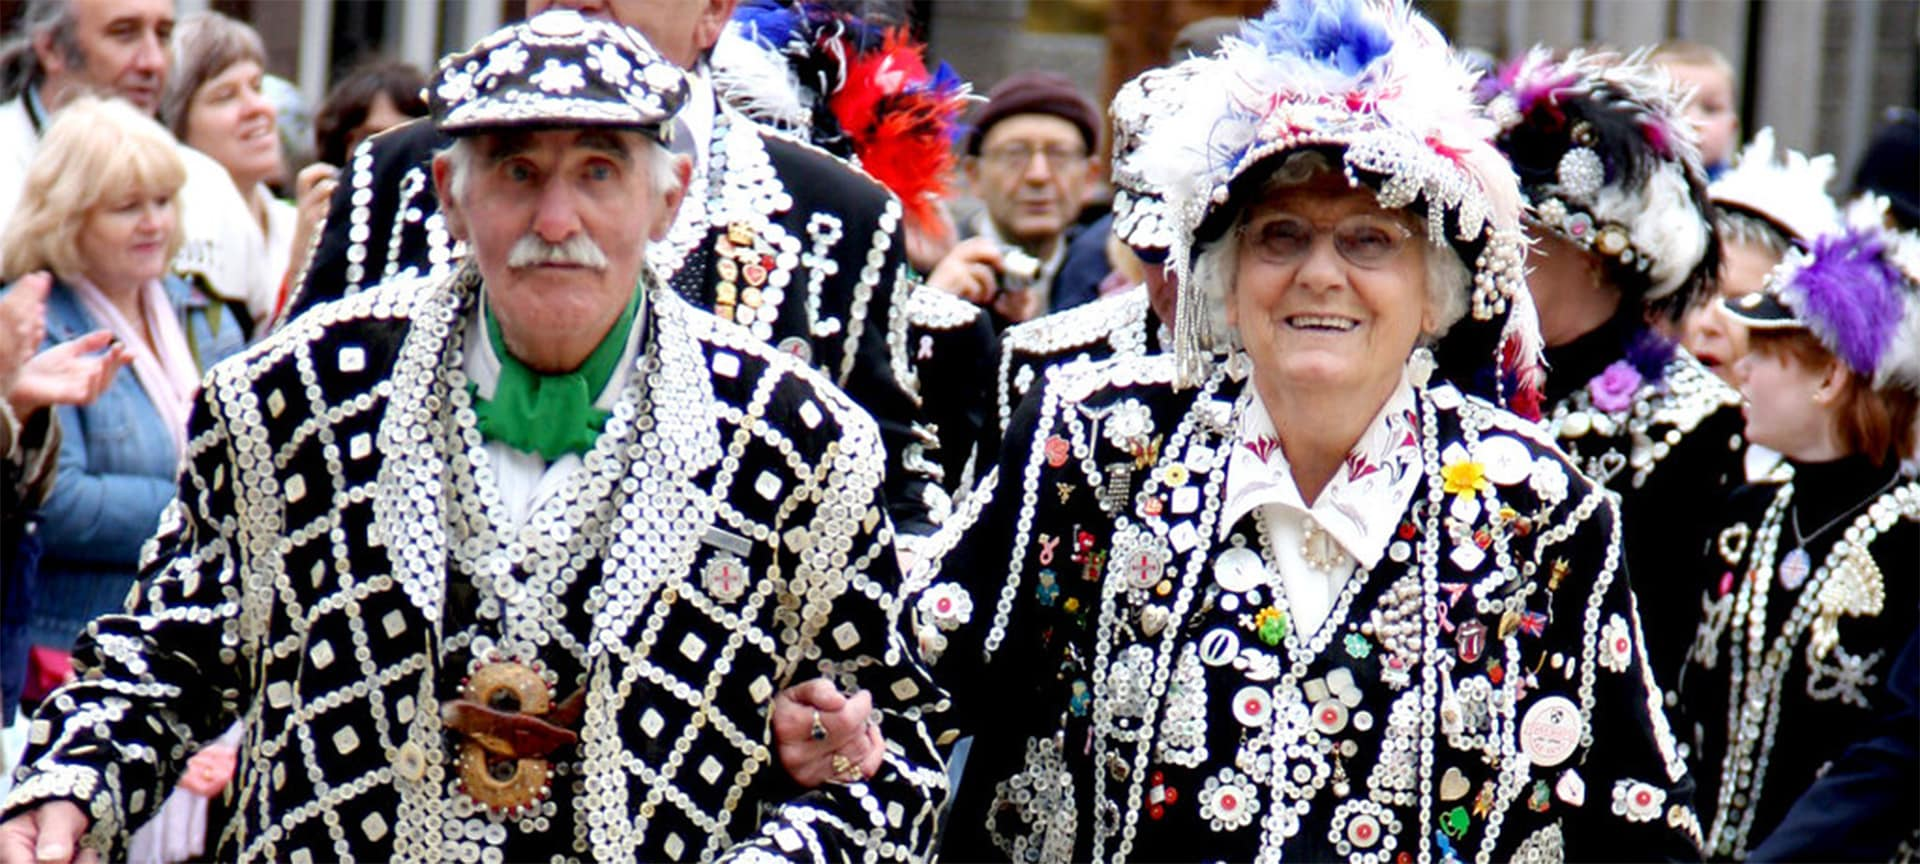 Pearly Kings and Queens are an iconic image of London, easily recognised by their distinctive suits and accessories covered with patterns of mother-of-pearl buttons. They've inspired fashion designers, costume makers, and been featured in everything from films to the London Olympics opening ceremony.